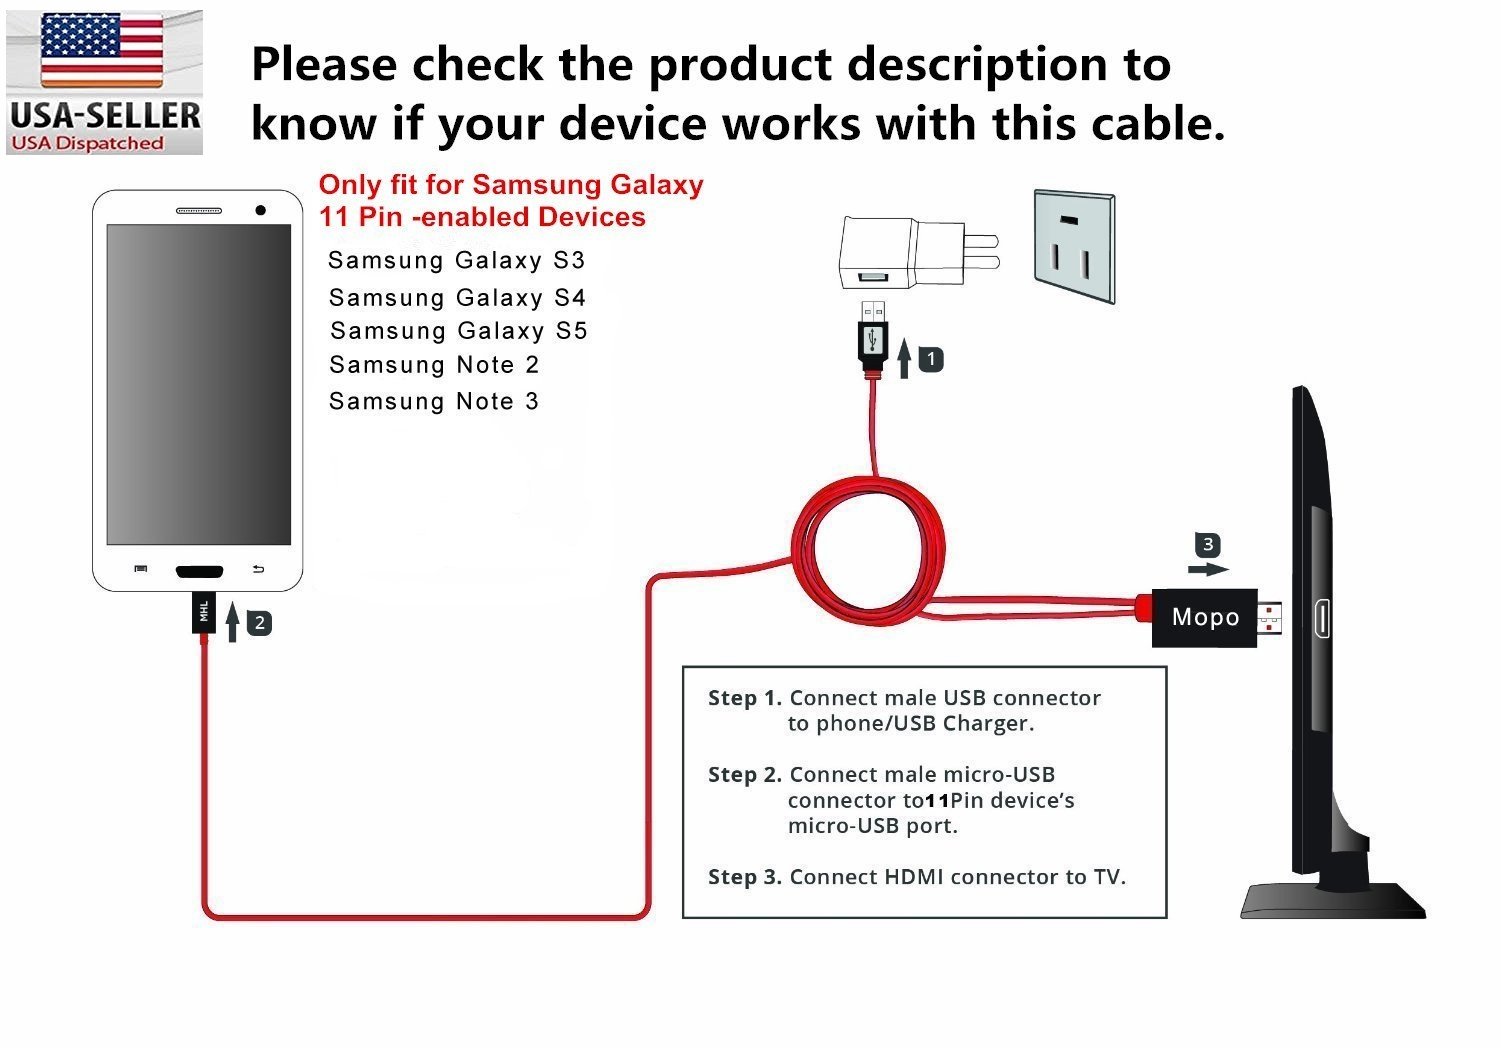 mhl micro usb to hdmi 1080p hd tv cable adapter samsung ... wiring diagram for vga to hdmi hd dta to hdmi connections diagrams